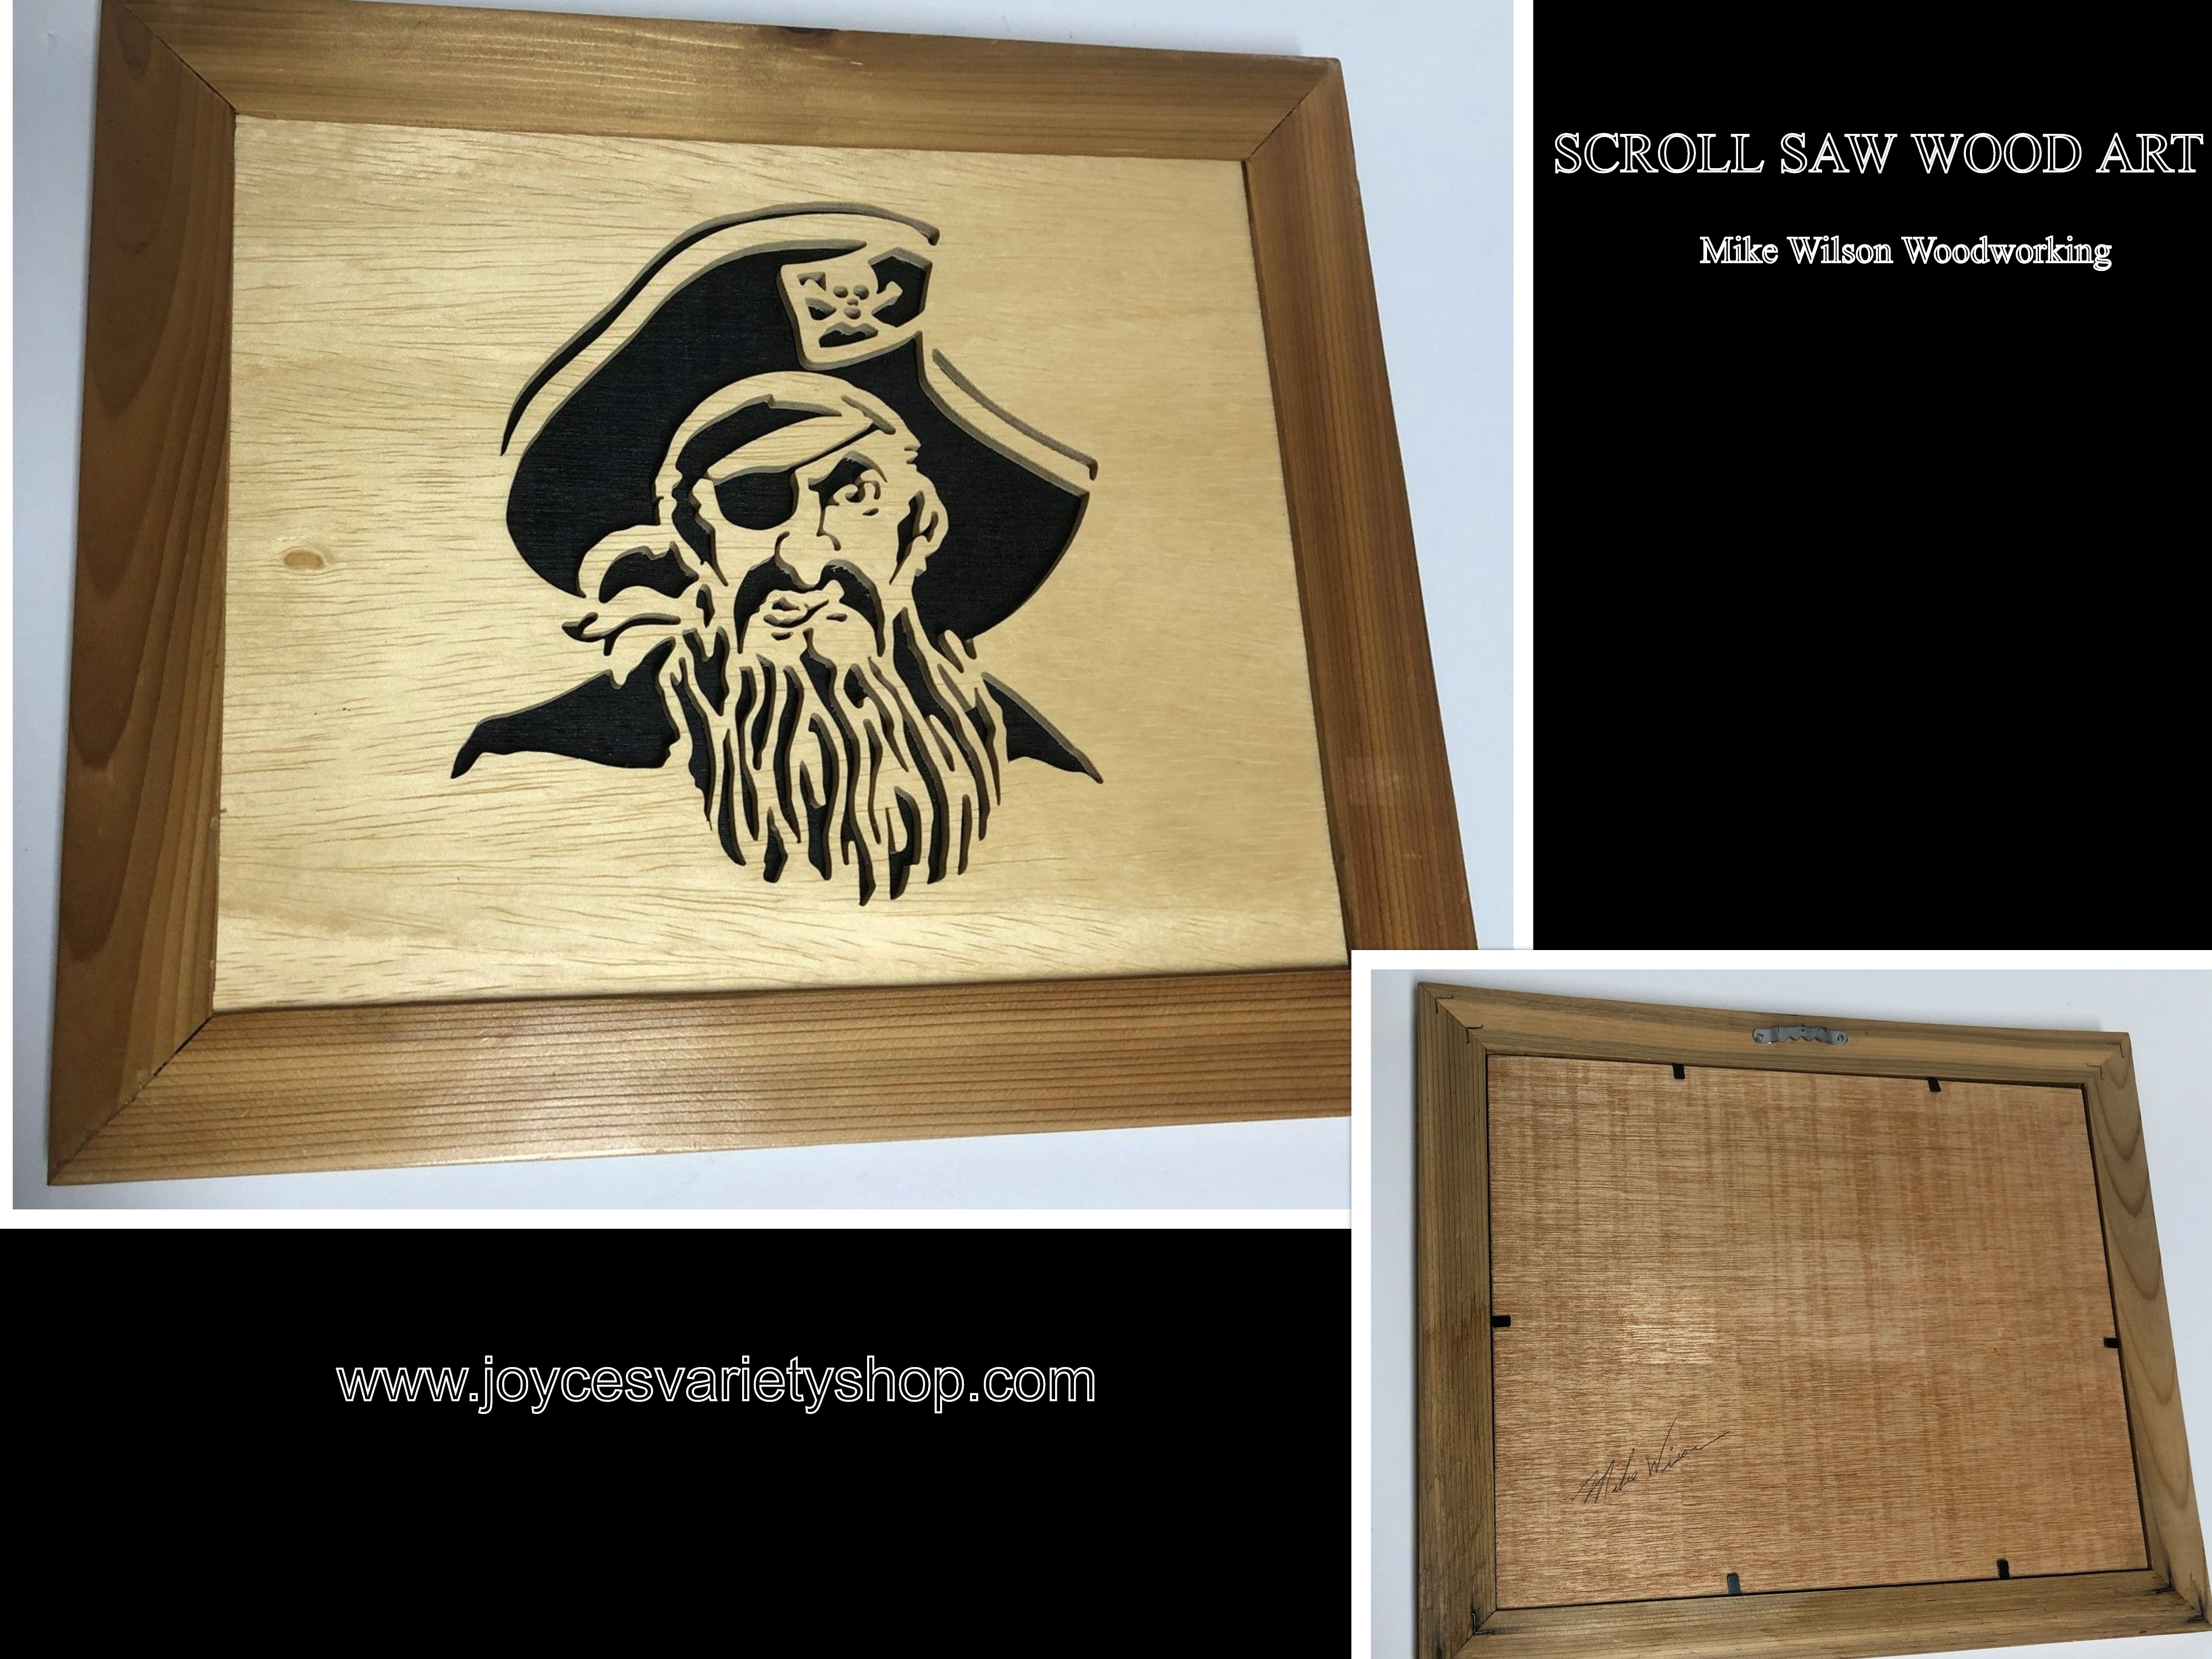 "Scroll Saw Art Mike Wilson Woodwork Pirate 10"" x 12"" Framed"